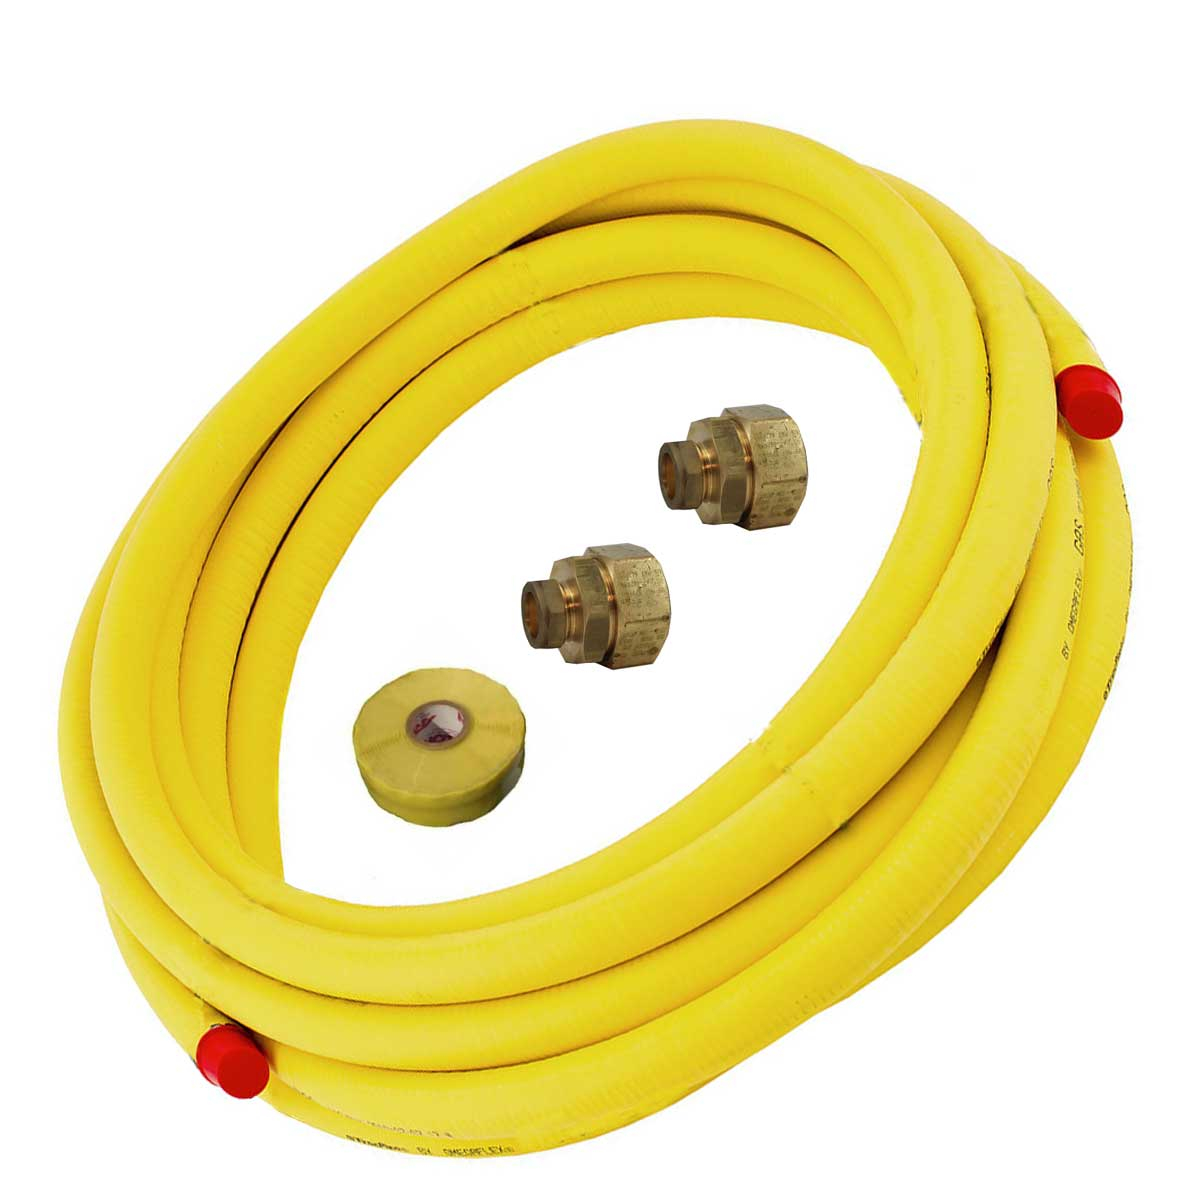 TracPipe 15m Flexible Gas Pipe Fittings and Tape Pack 32-35mm